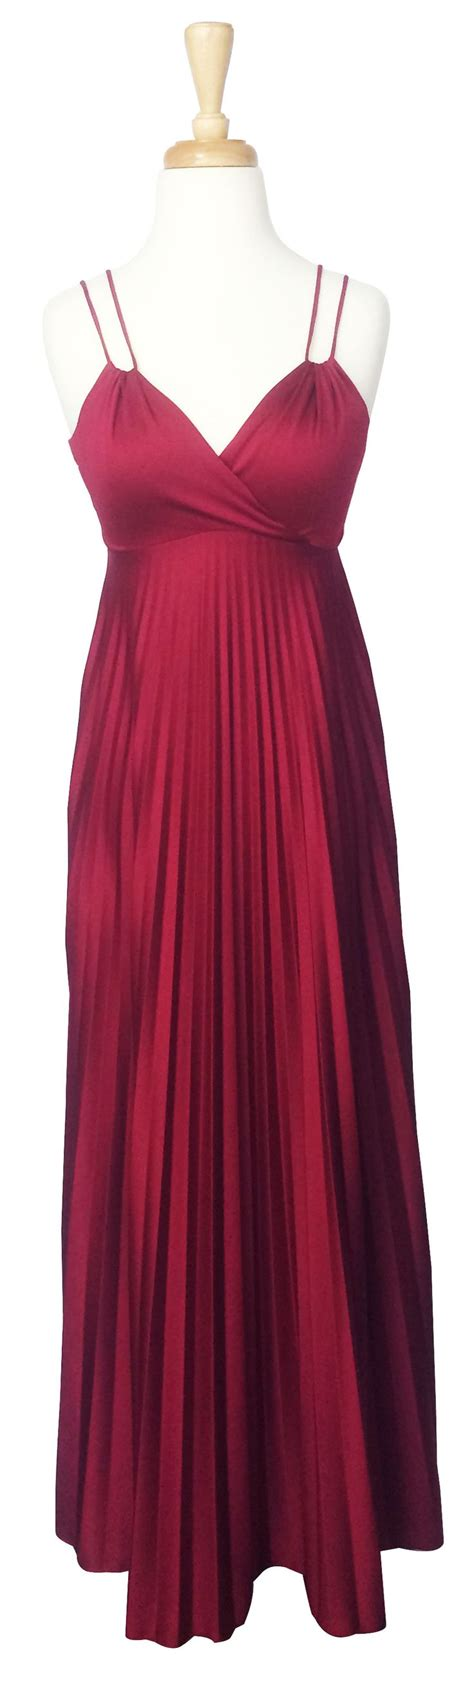 wine color dress the 25 best wine colored dresses ideas on